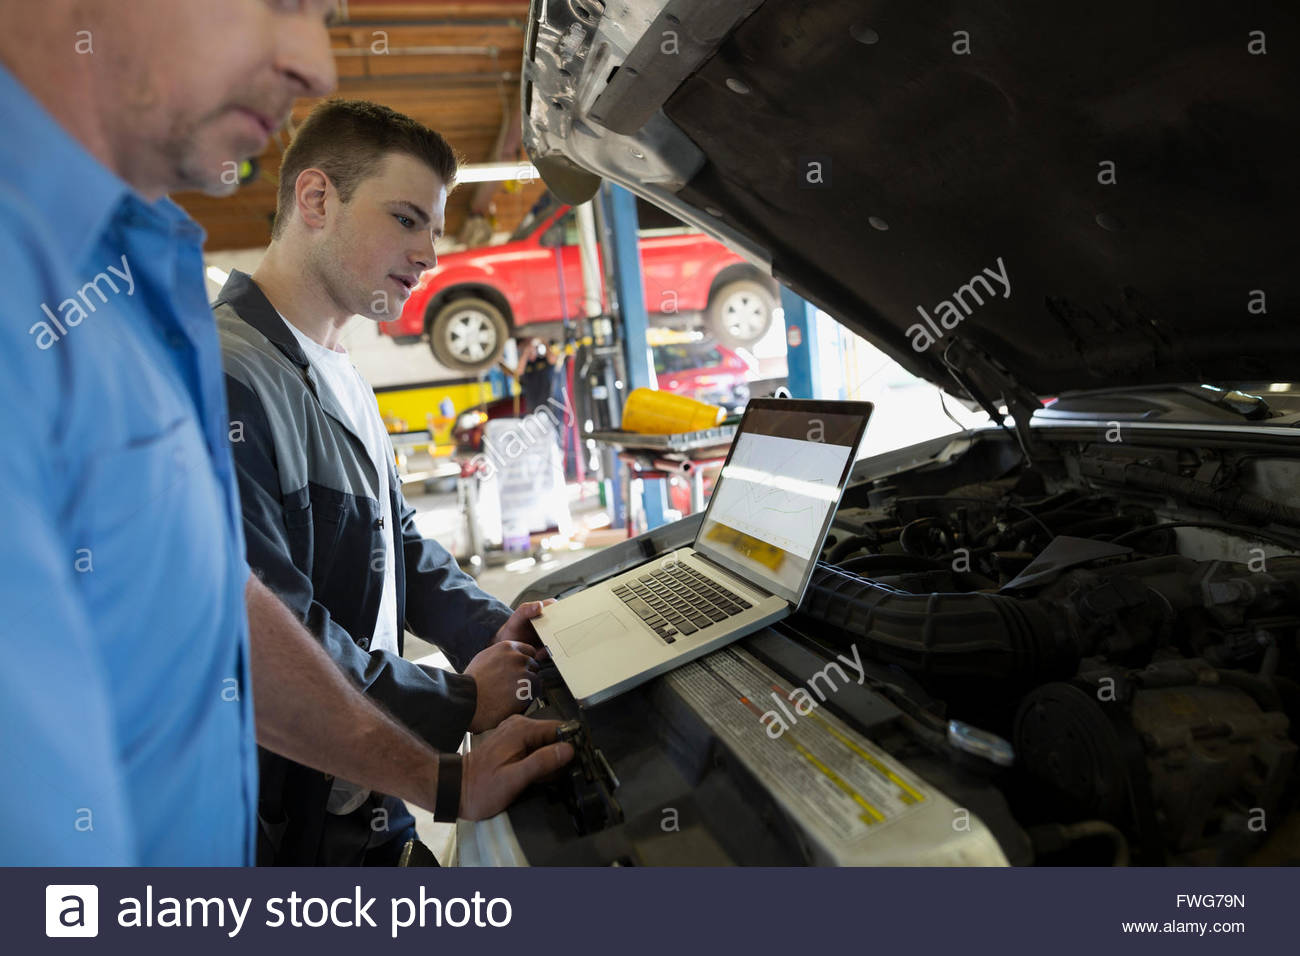 Mechanics with laptop performing engine diagnostics - Stock Image